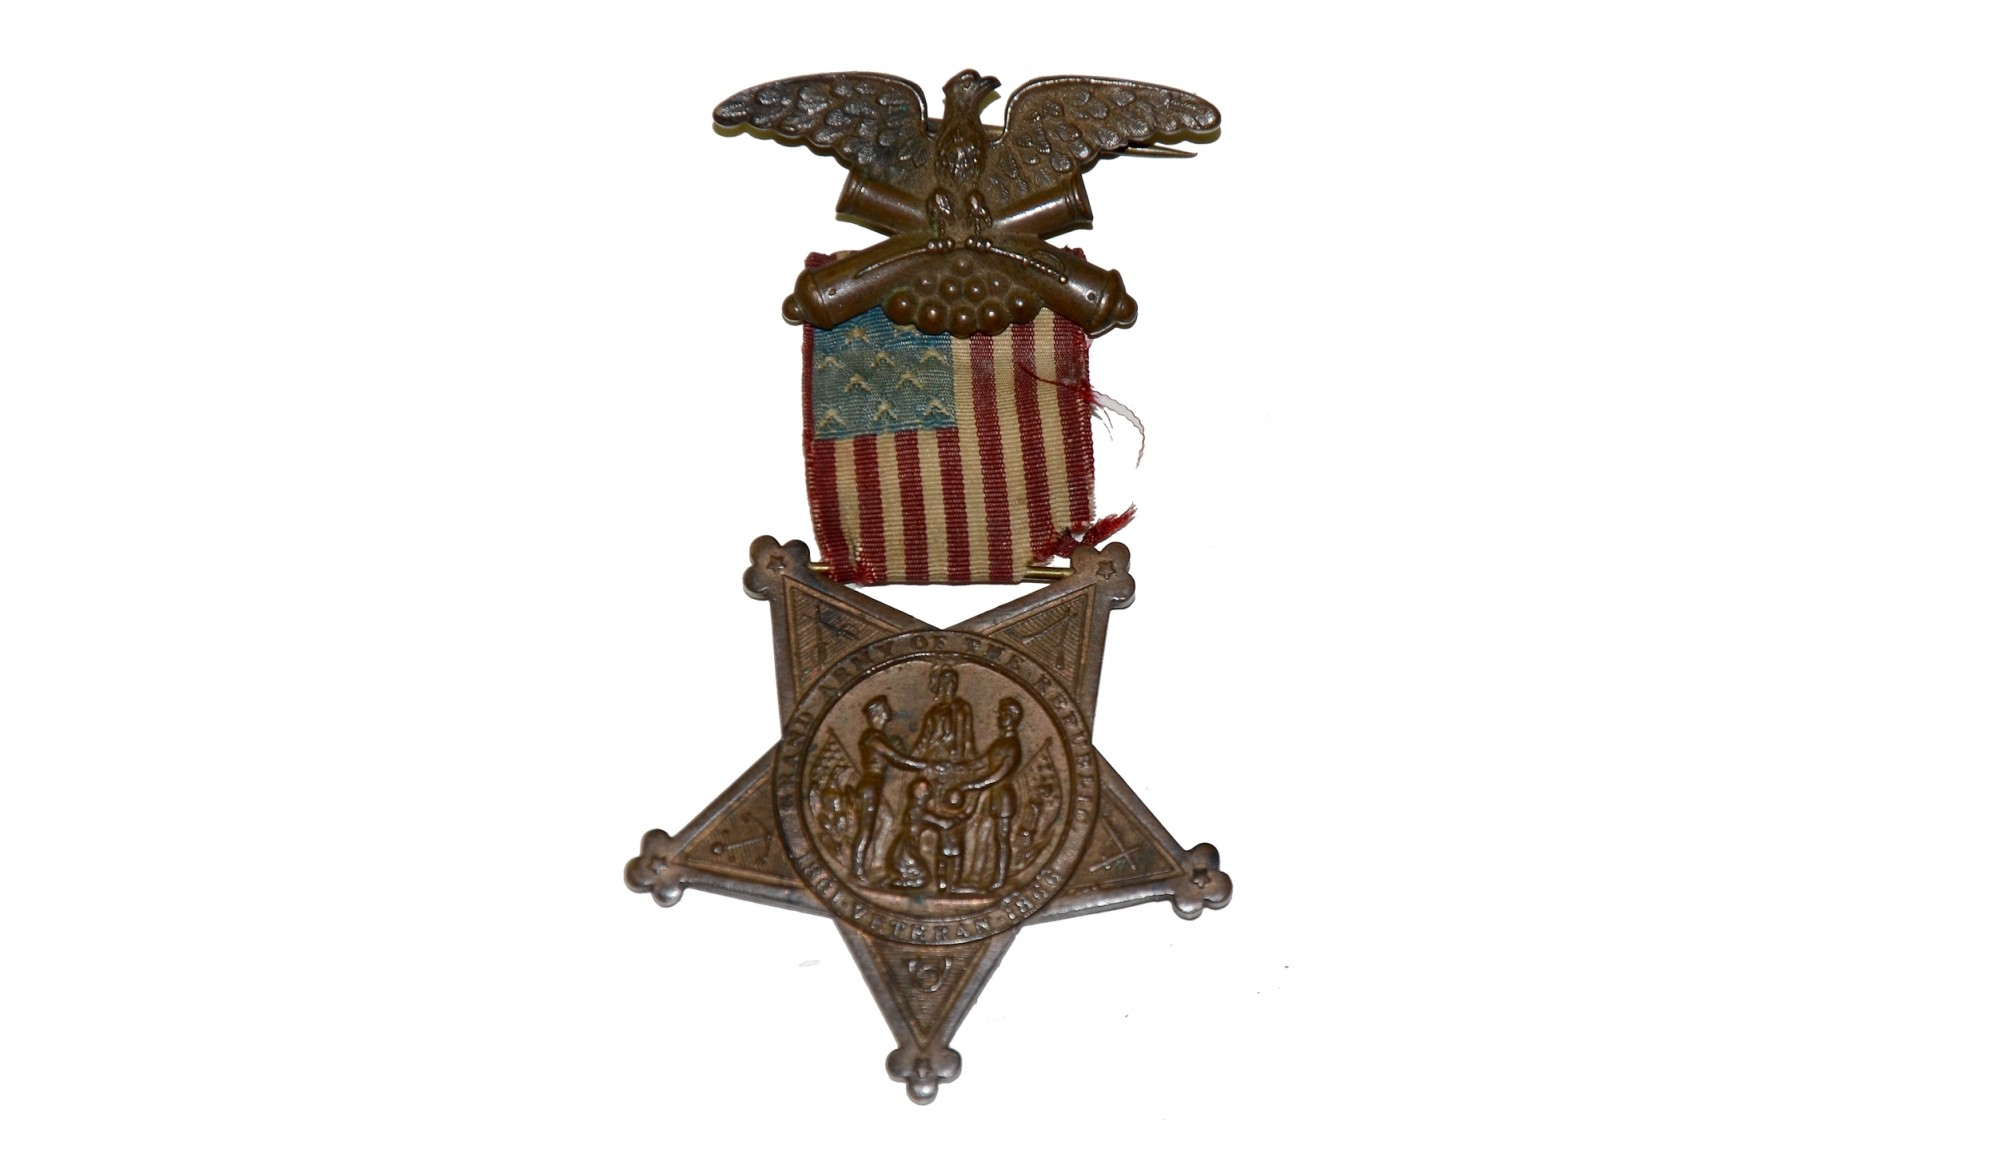 GAR MEMBERSHIP BADGE